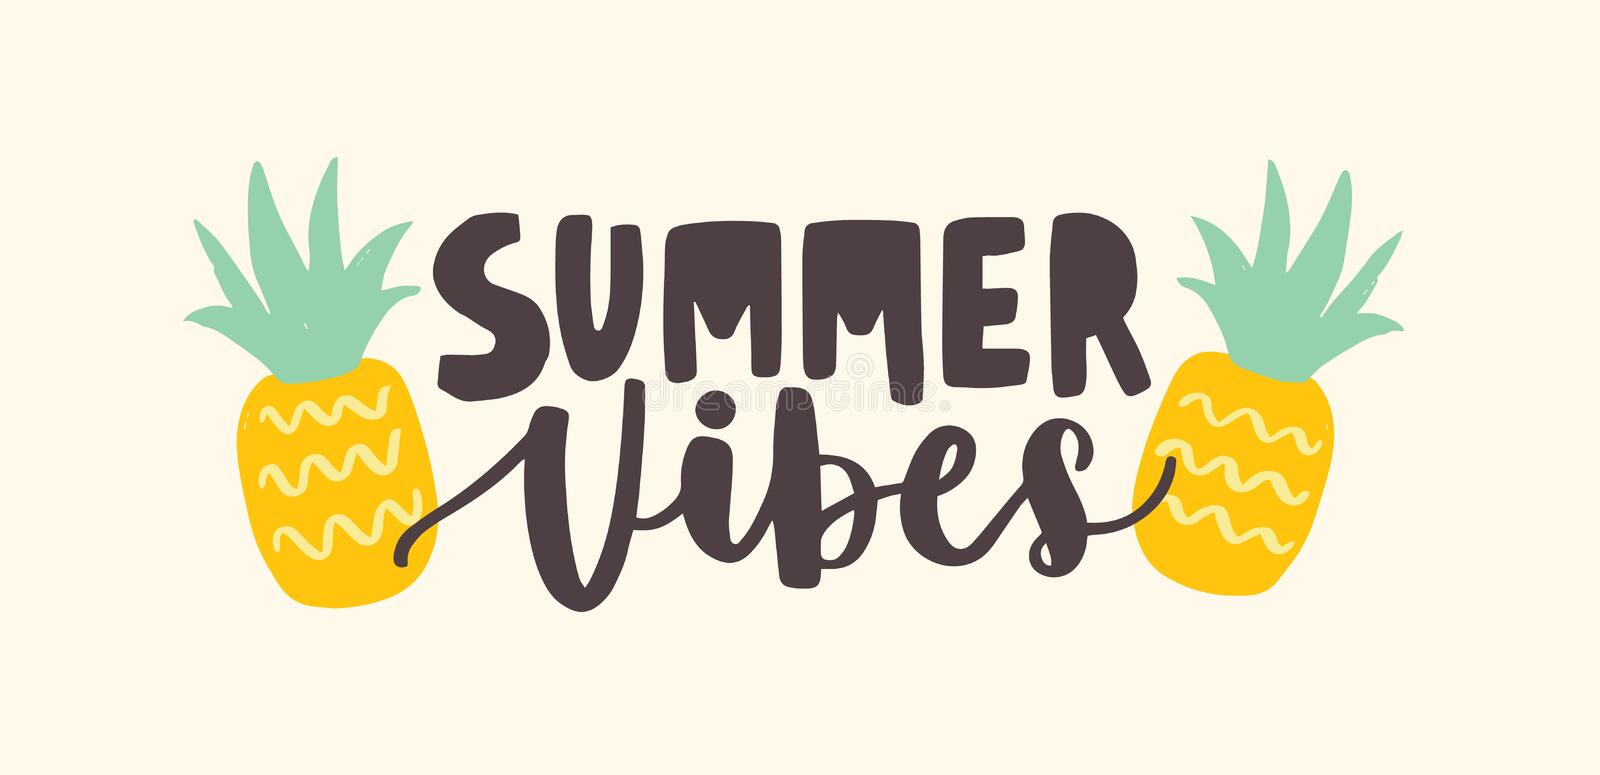 Summer Vibes lettering handwritten with cursive calligraphic font and decorated by pineapples. Trendy summertime. Composition with tropical fruits. Modern flat royalty free illustration